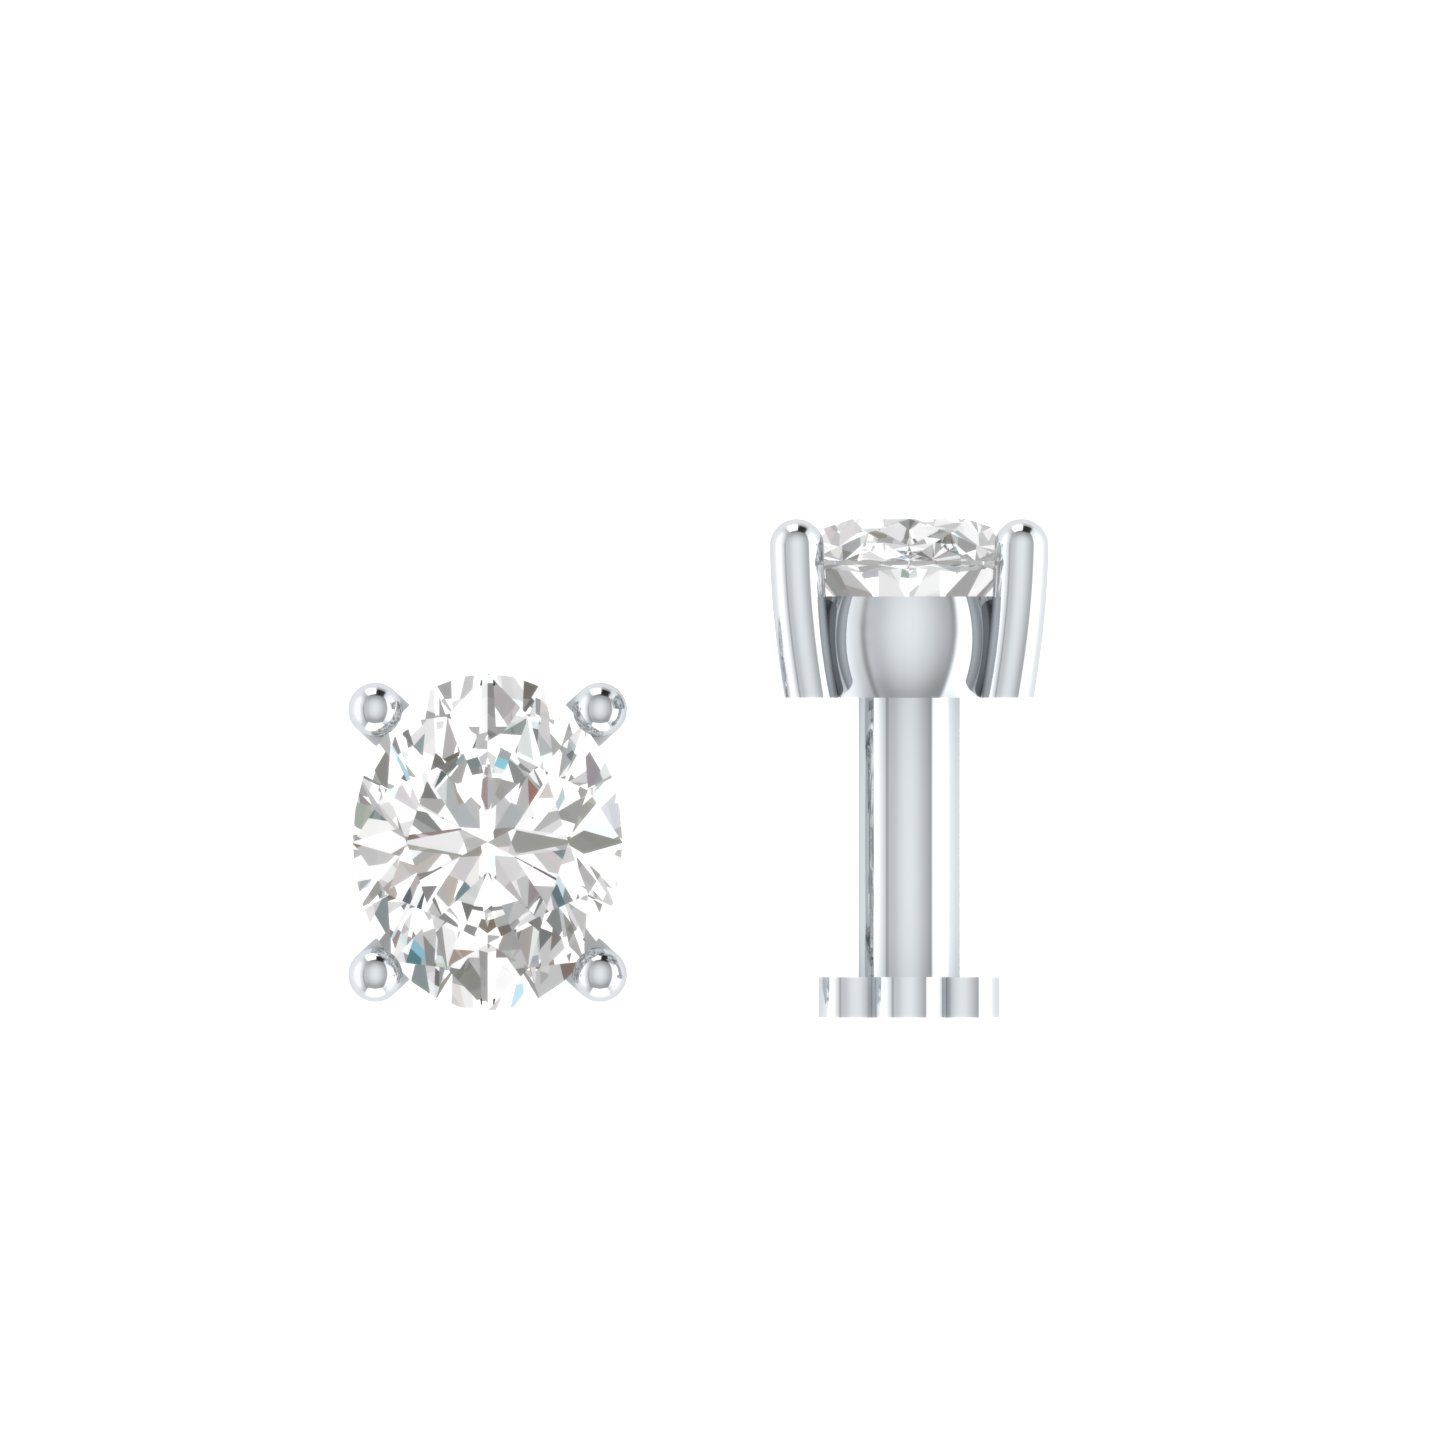 Smjewels 0.15 Ct Sim. Diamond Solitaire Nose Bone Sterling Silver Screw Stud Piercing Ring Pin